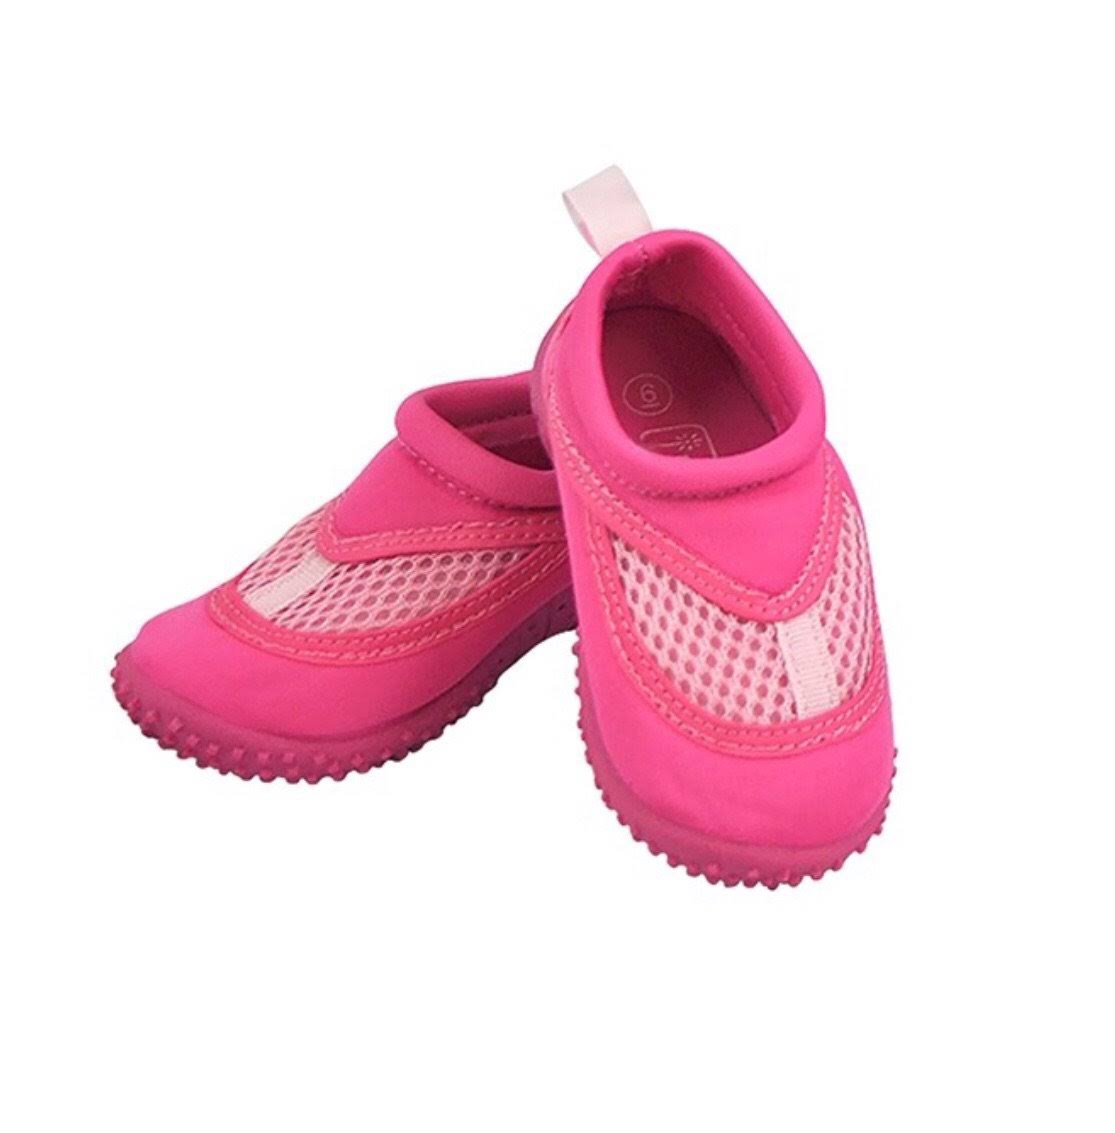 Iplay Baby Unisex Swim Shoes - Hot Pink, 4 US